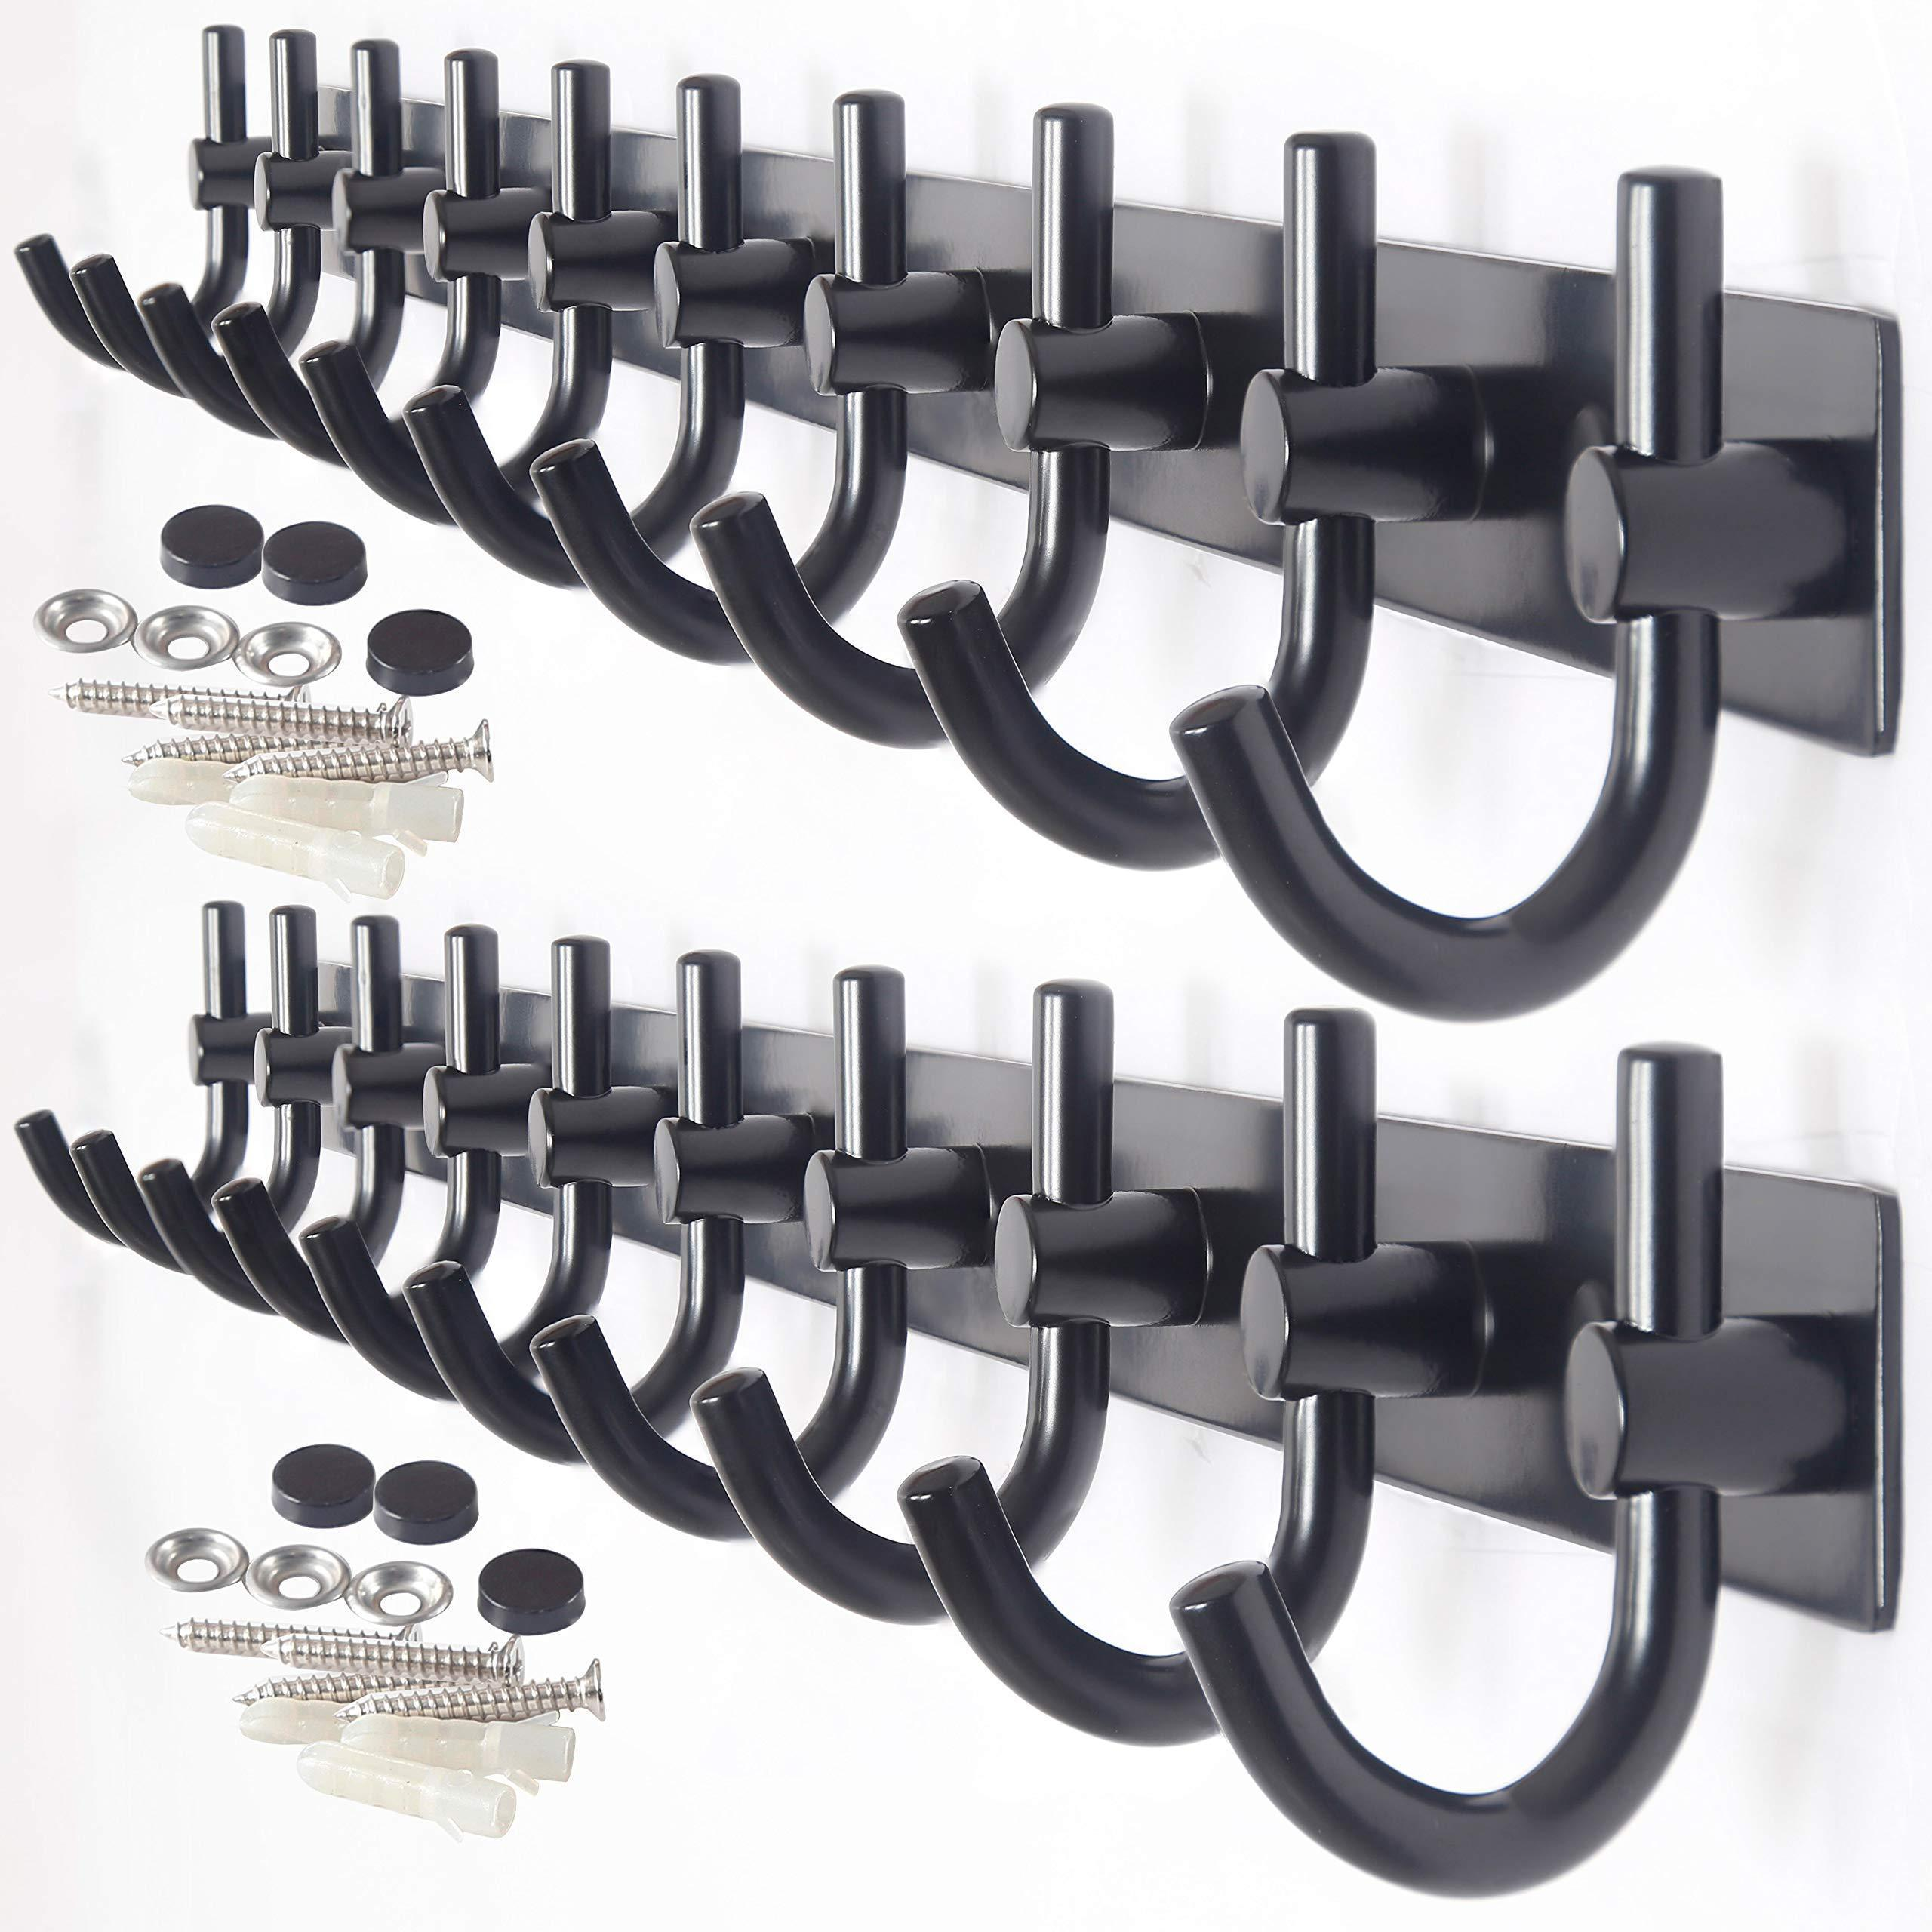 WEBI Wall Mounted Coat Rack - 30-Inch 10 Hooks Rack Rail, Heavy Duty Coat Hat Hook for Bathroom Entryway Closet Foyer Hallway,Black,2 Packs